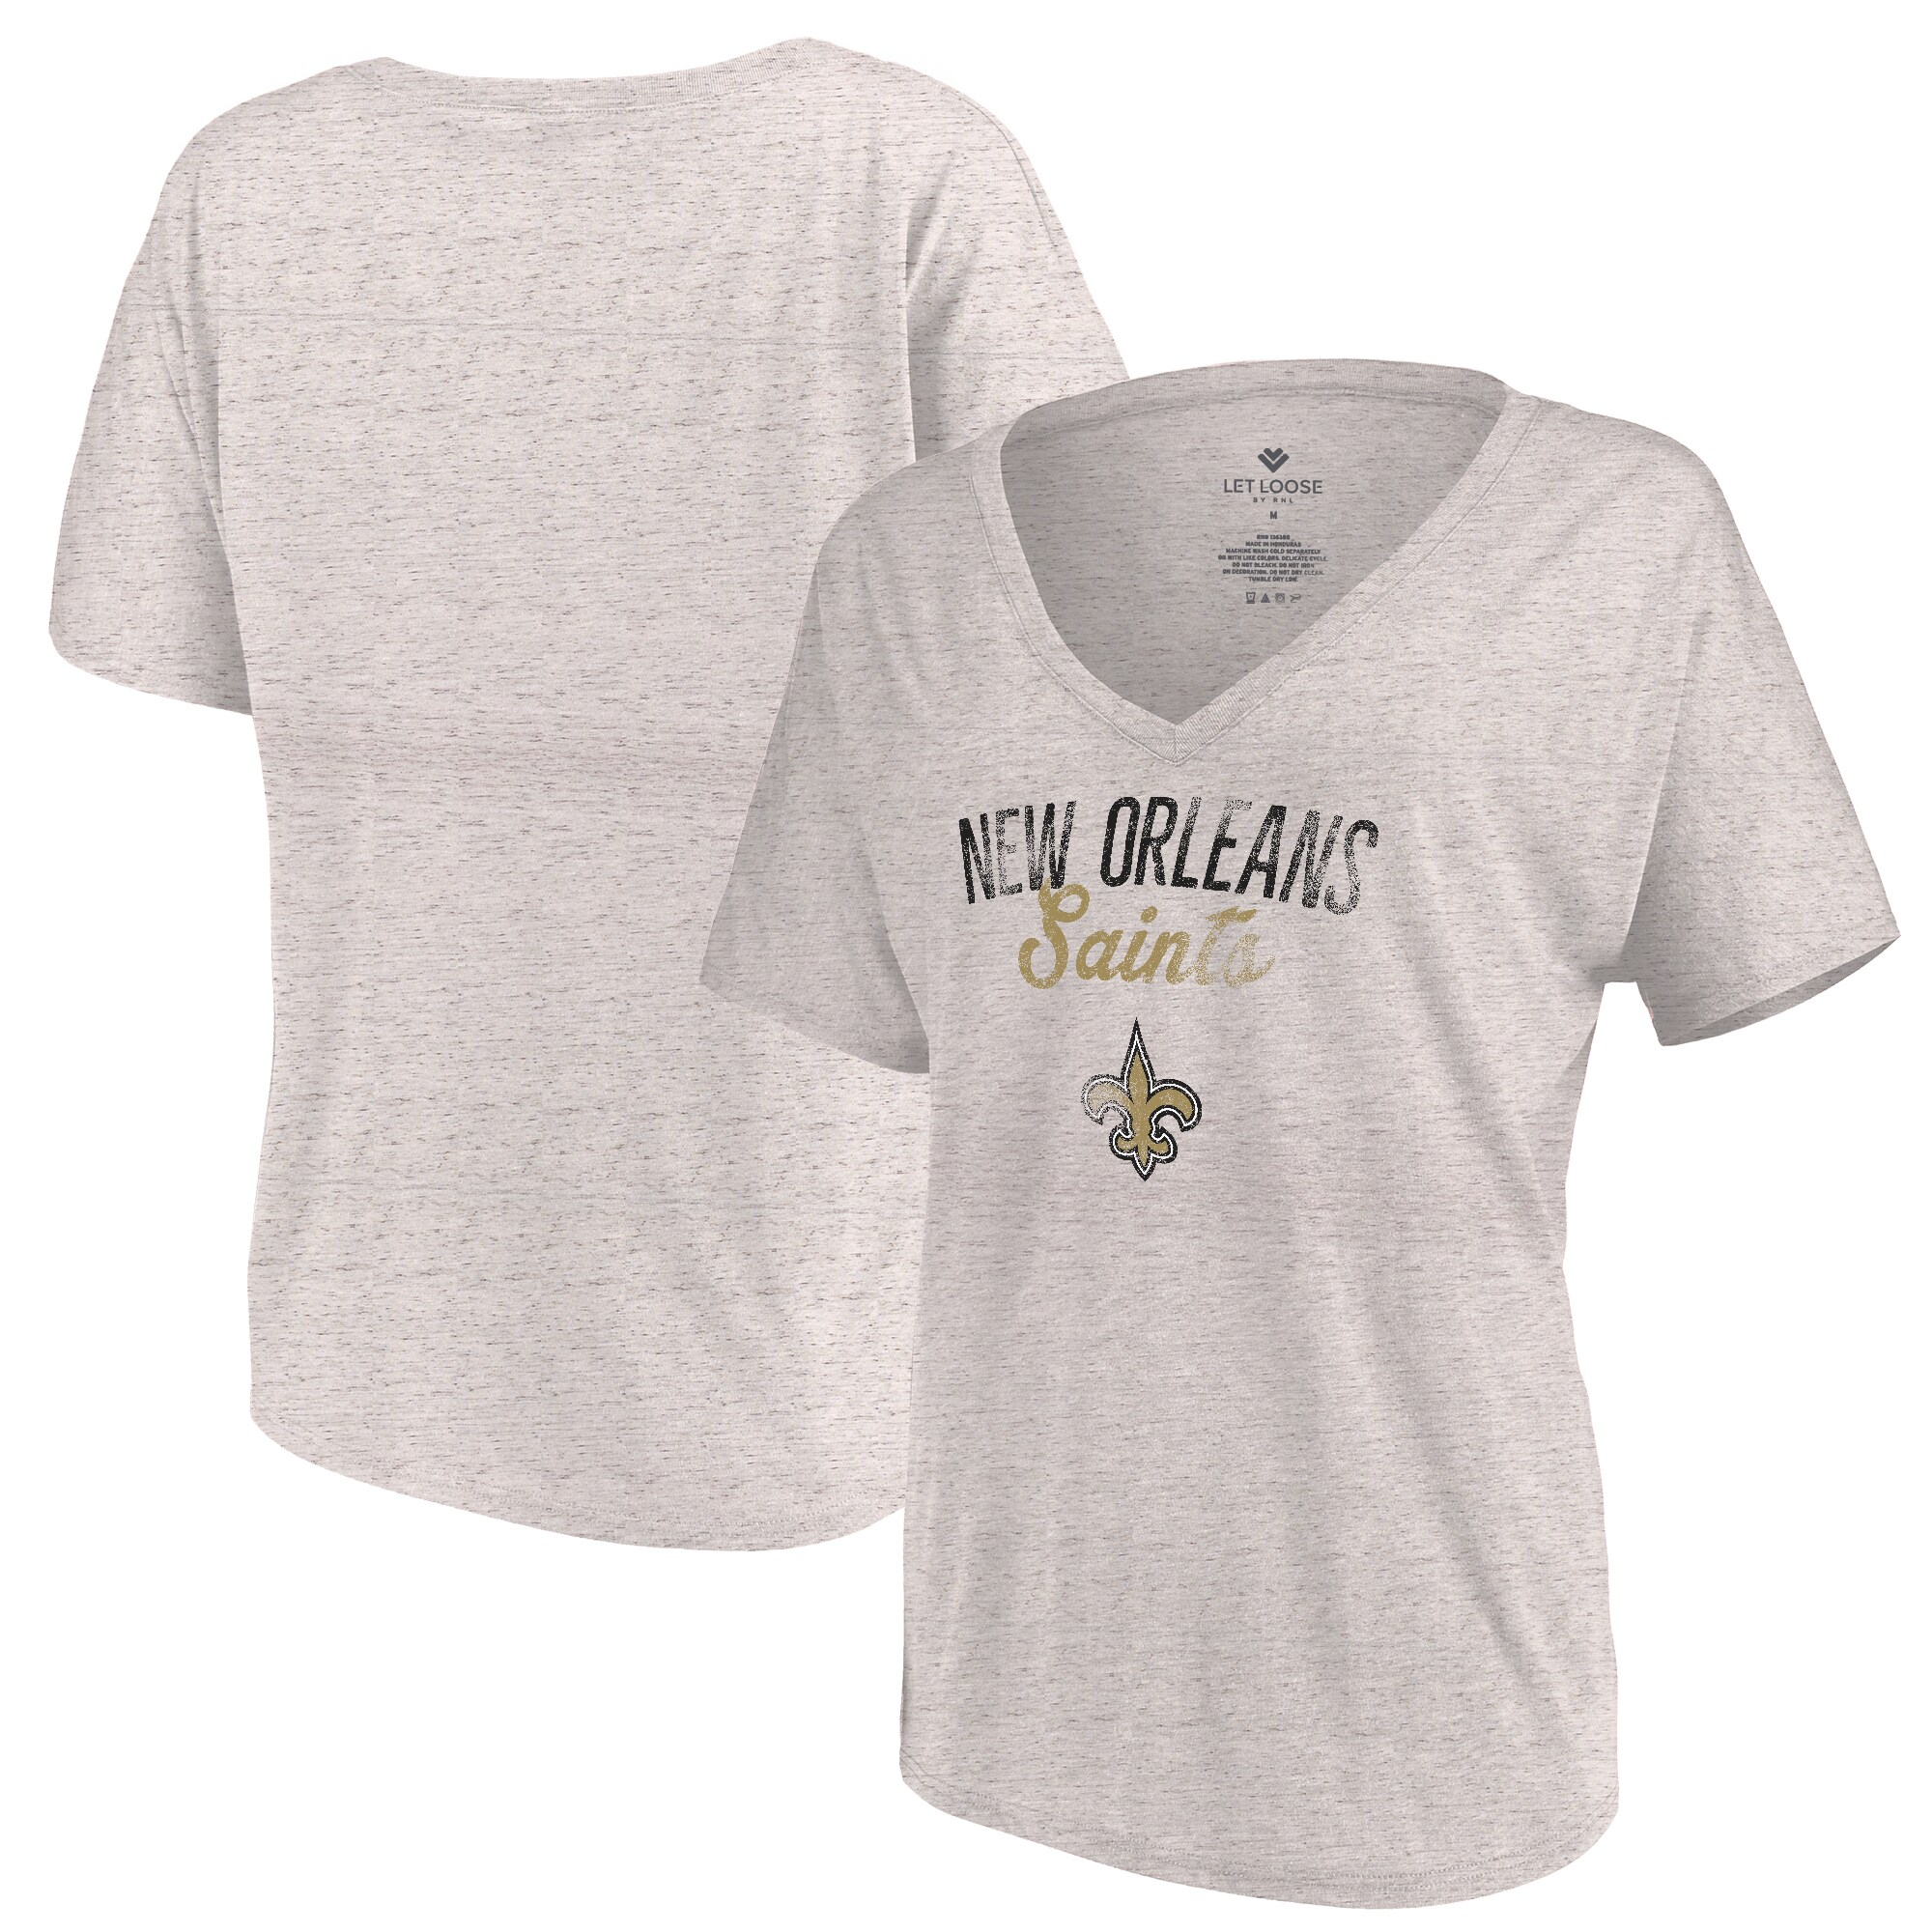 New Orleans Saints Let Loose by RNL Women's Endless V-Neck T-Shirt - White Marble